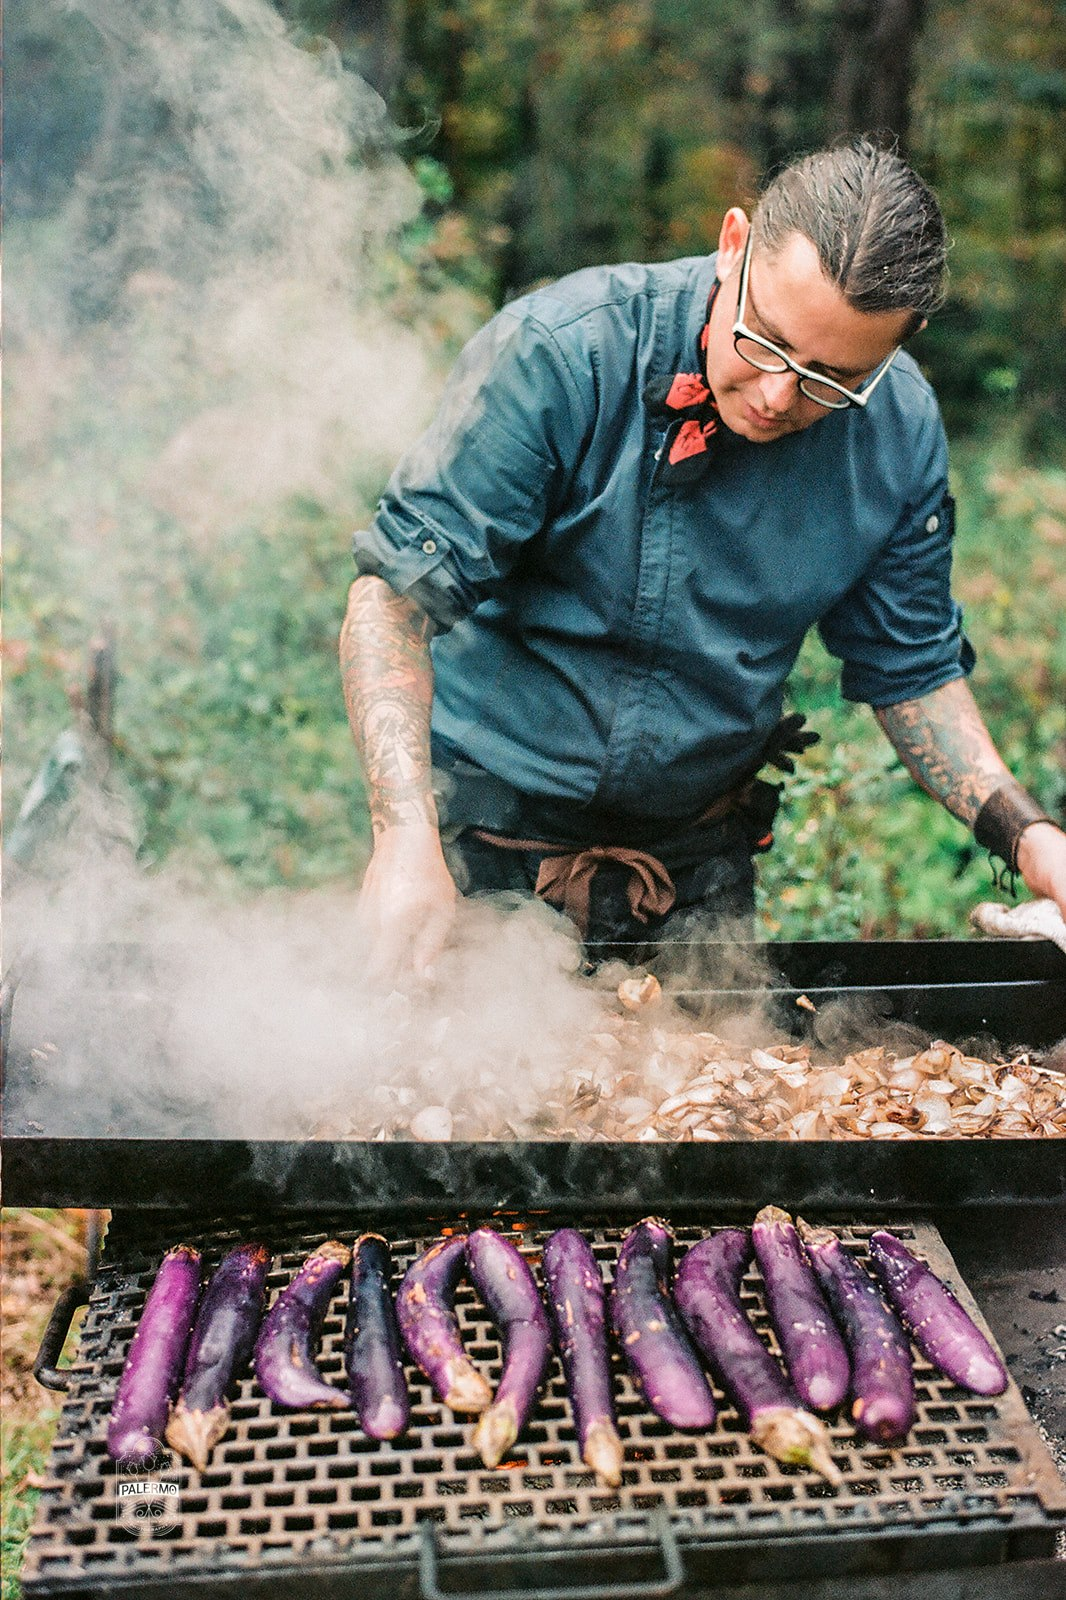 Cooking out for fall barn wedding in Pittsburgh, PA planned by Exhale Events. Find more wedding inspiration at exhale-events.com!